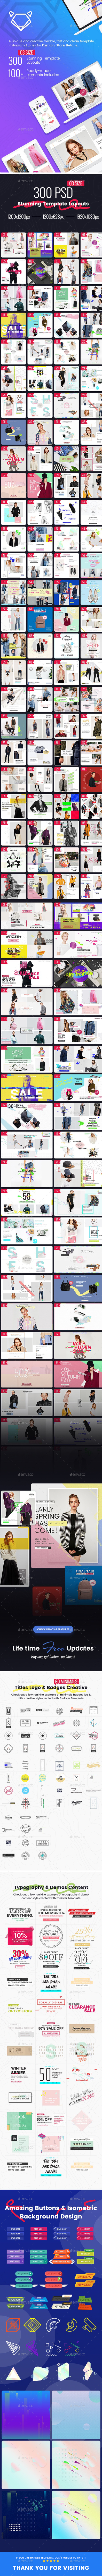 Fashion Facebook Post - 300PSD - Banners & Ads Web Elements